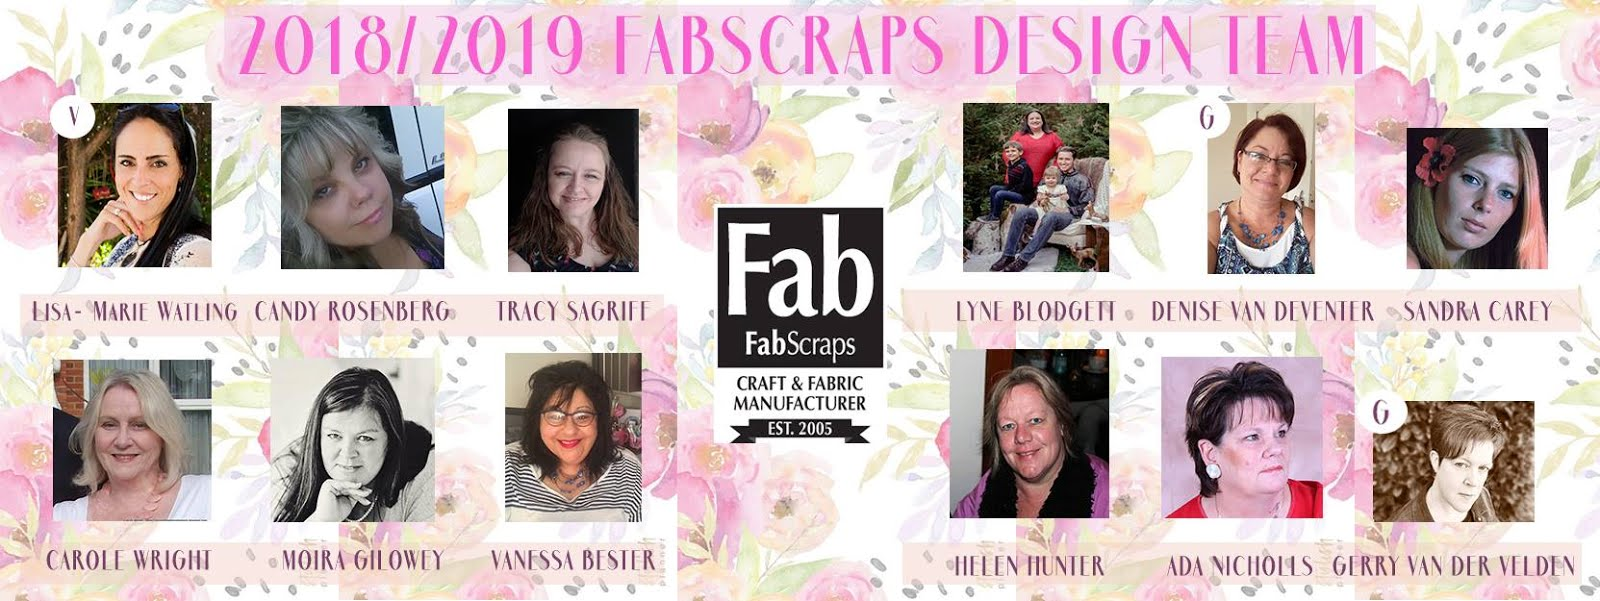 FABSCRAPS DESIGN TEAM 2018/2019